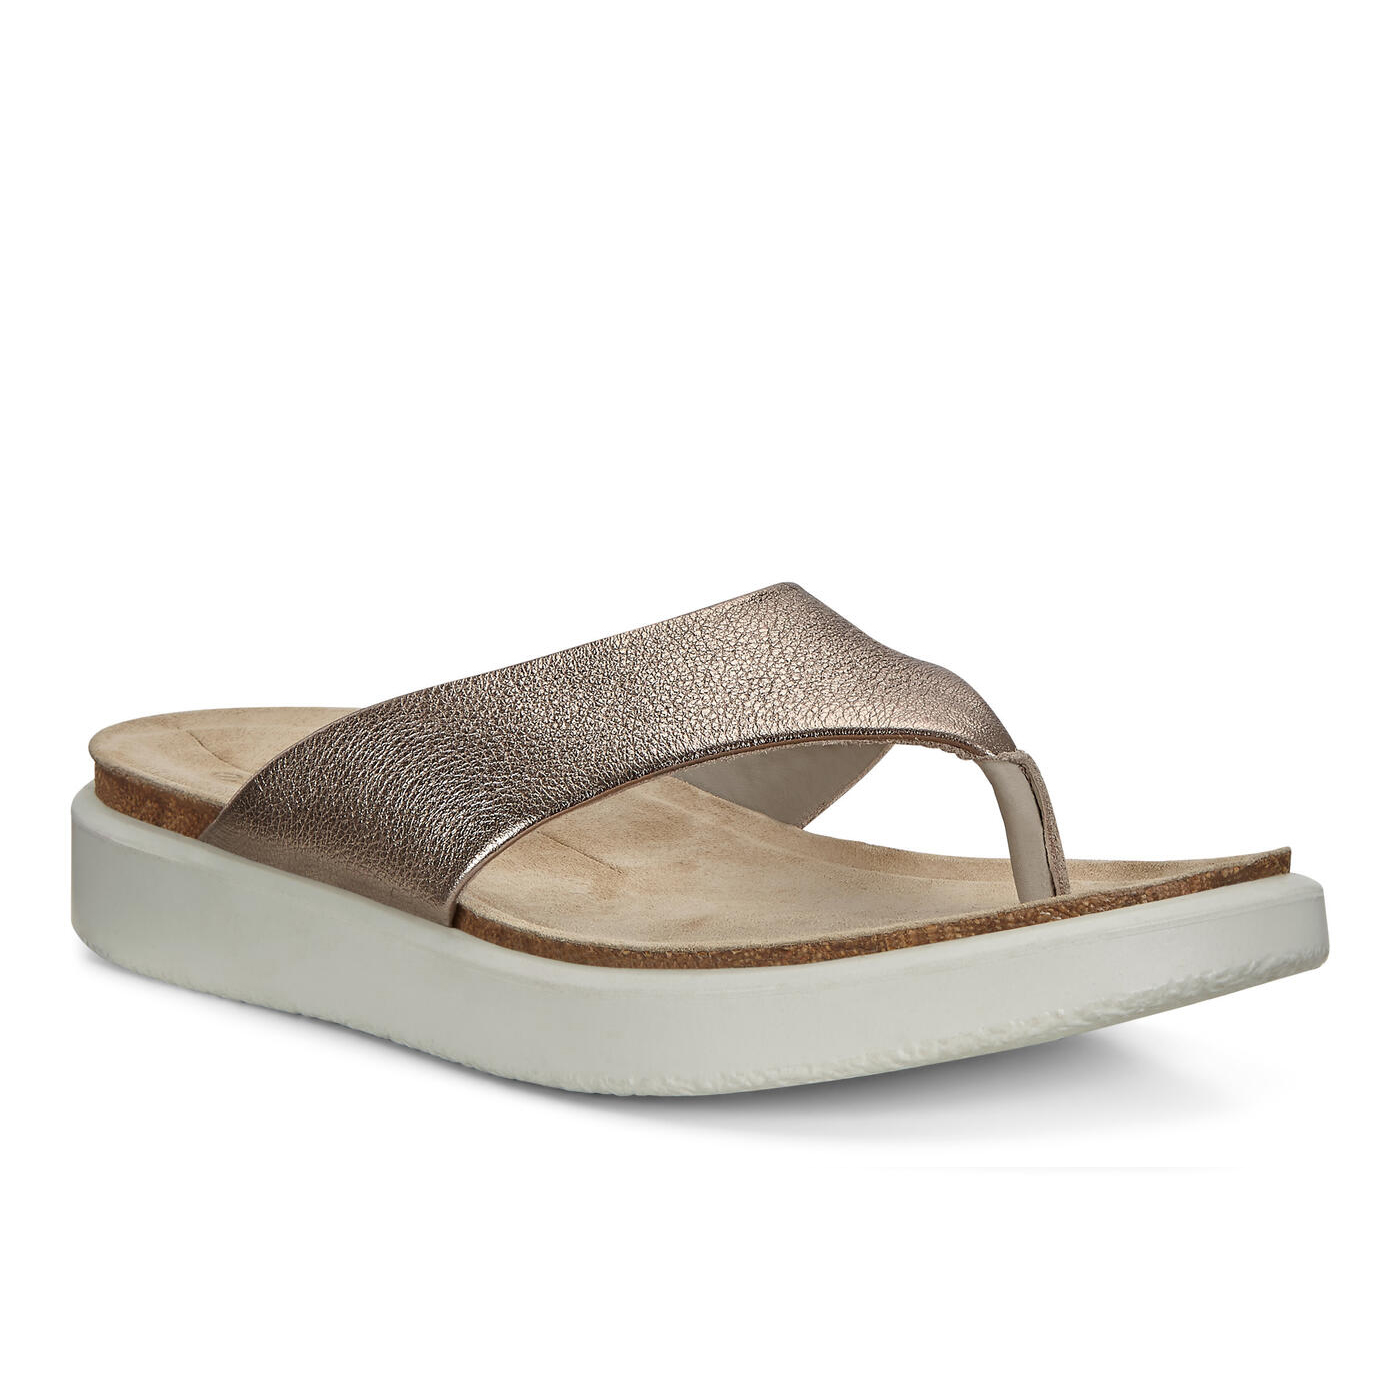 UPC 825840029949 product image for ECCO Corksphere Sandal W Thong Size 10-10.5 Warm Grey Metallic | upcitemdb.com